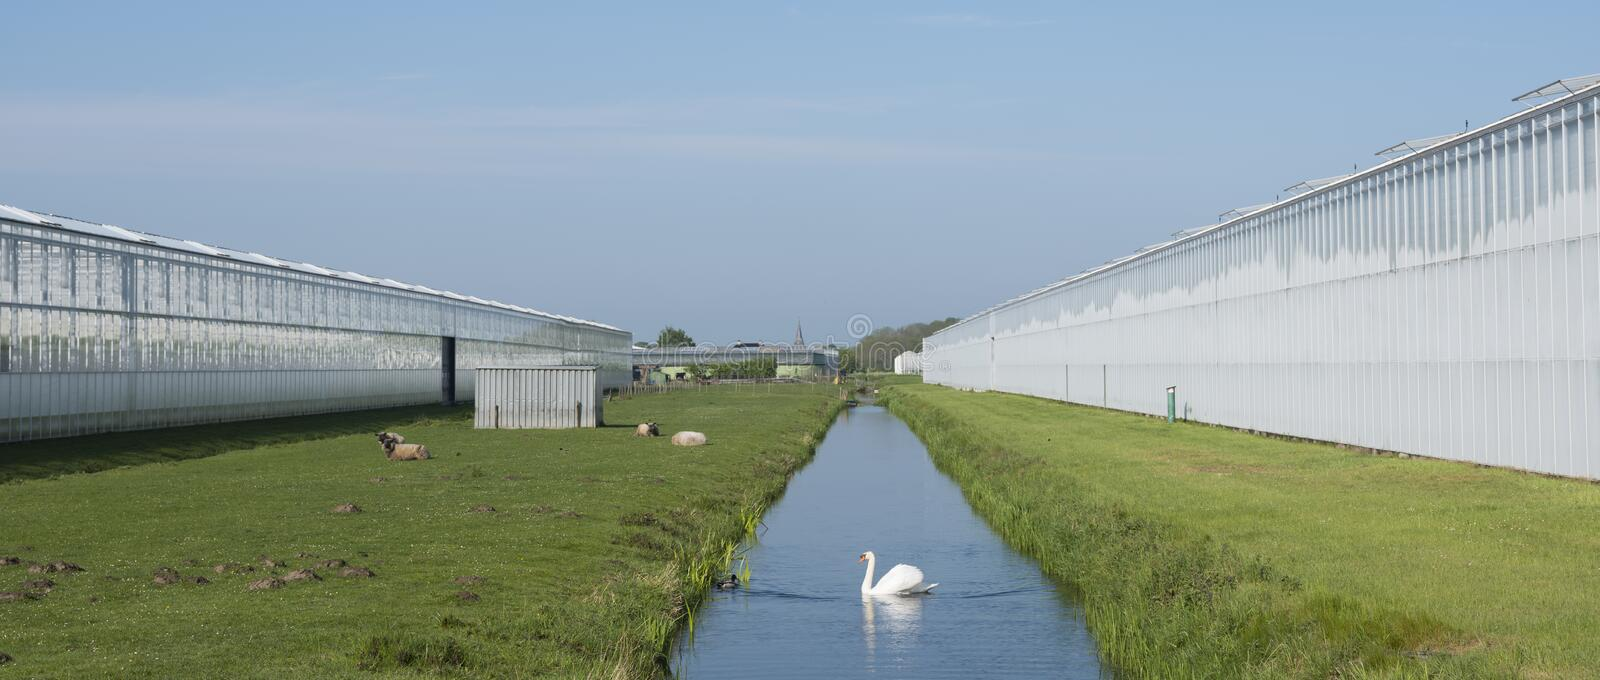 Swan in canal between greenhouses under blue sky in the netherlands near utrecht and De Meern. Panoramic picture of swan in canal between greenhouses under blue stock photos